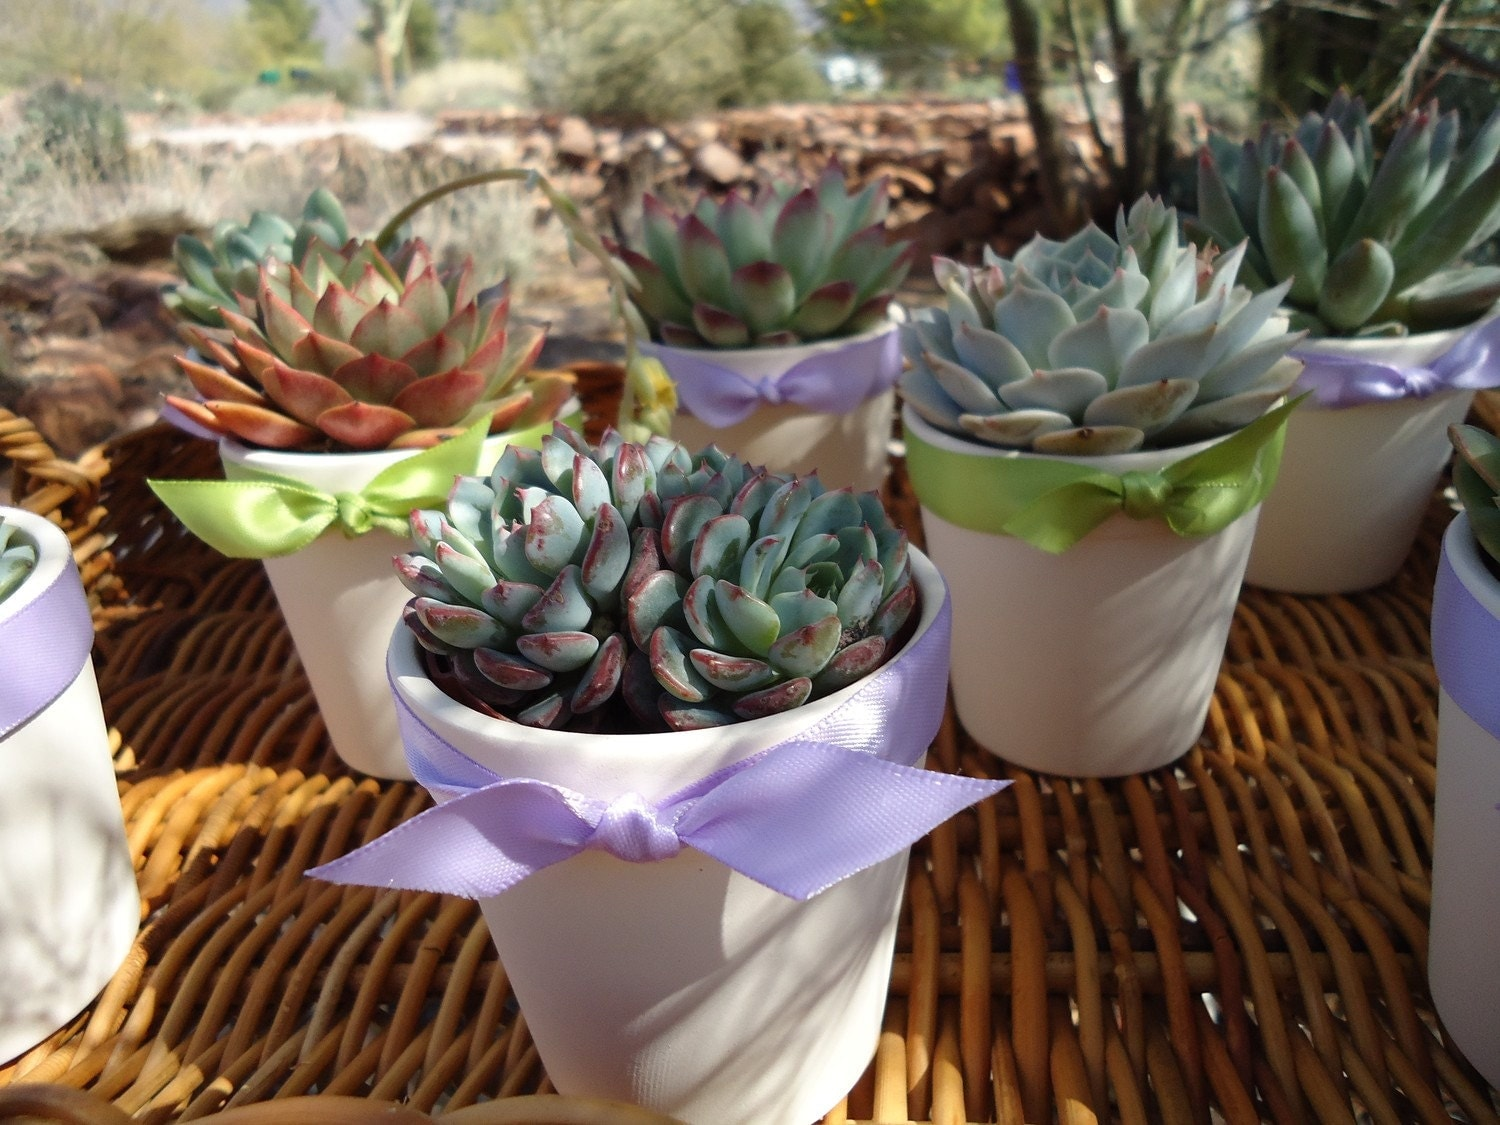 Featured in Birds & Blooms Magazine, A Colorful Assortment of 12 Gorgeous Succulents, Great For Wedding Favors, Bridal Shower